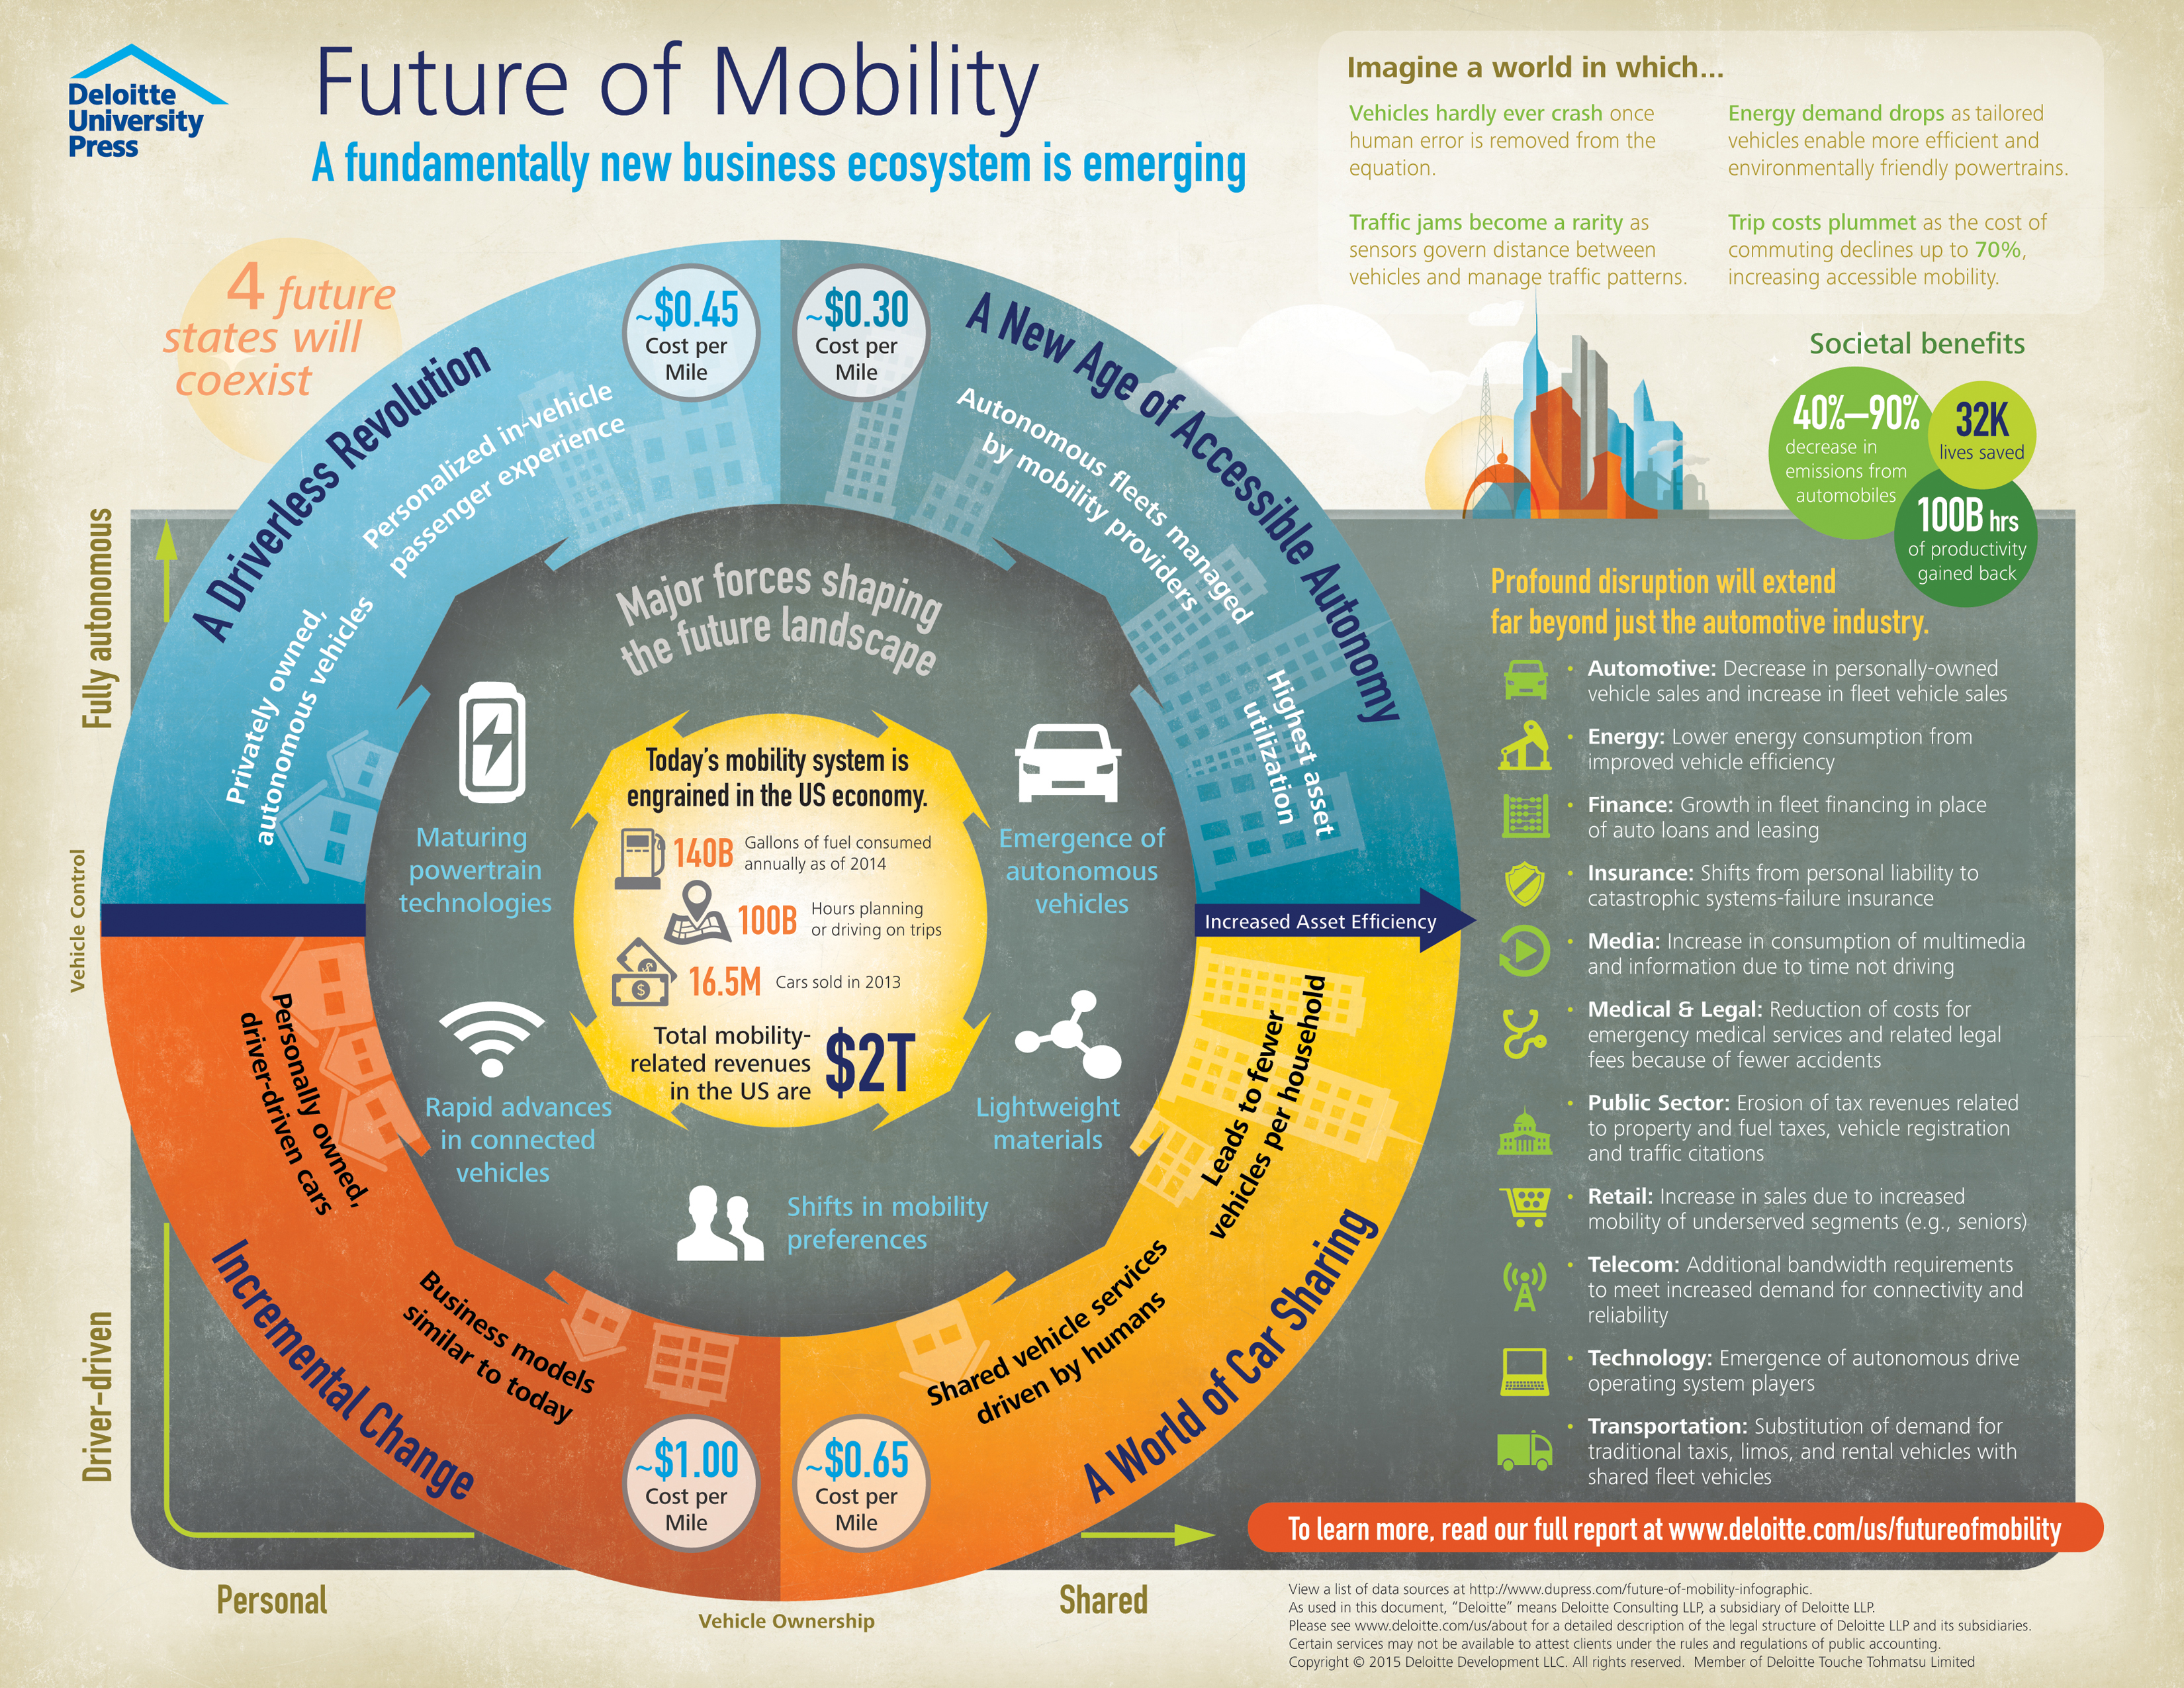 DUPress-Mobility-infographic_12.10